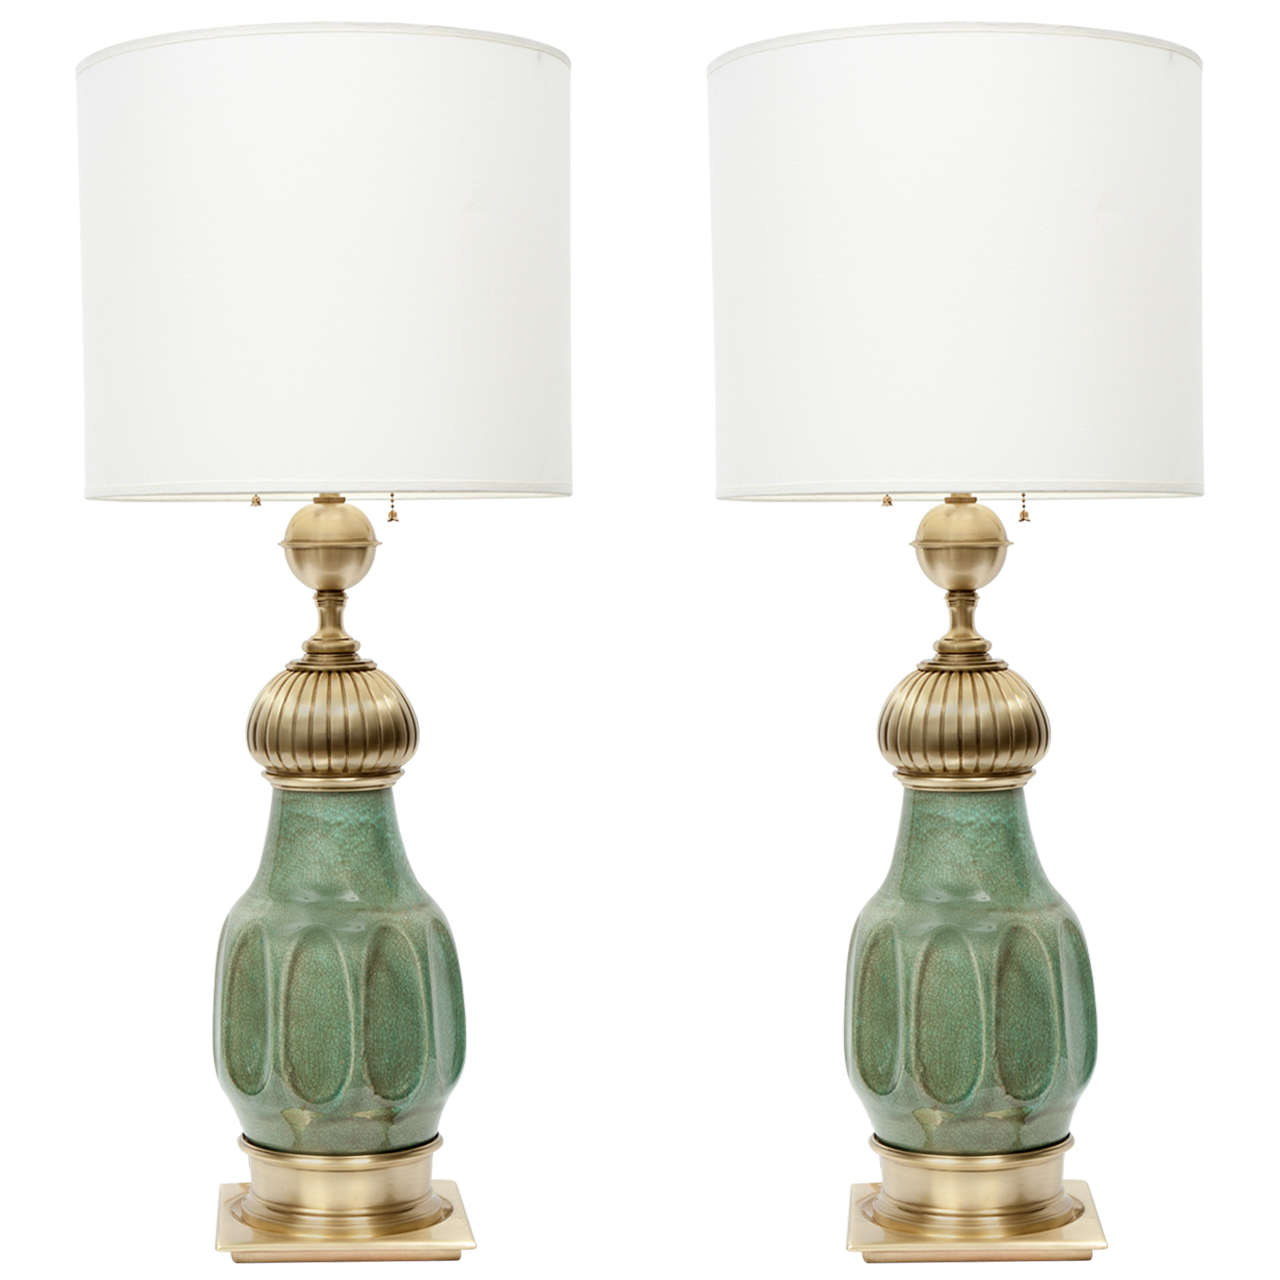 Vintage stiffel brass table lamps - Pair Of Jade Green Ceramic And Satin Brass Lamps By Stiffel 1